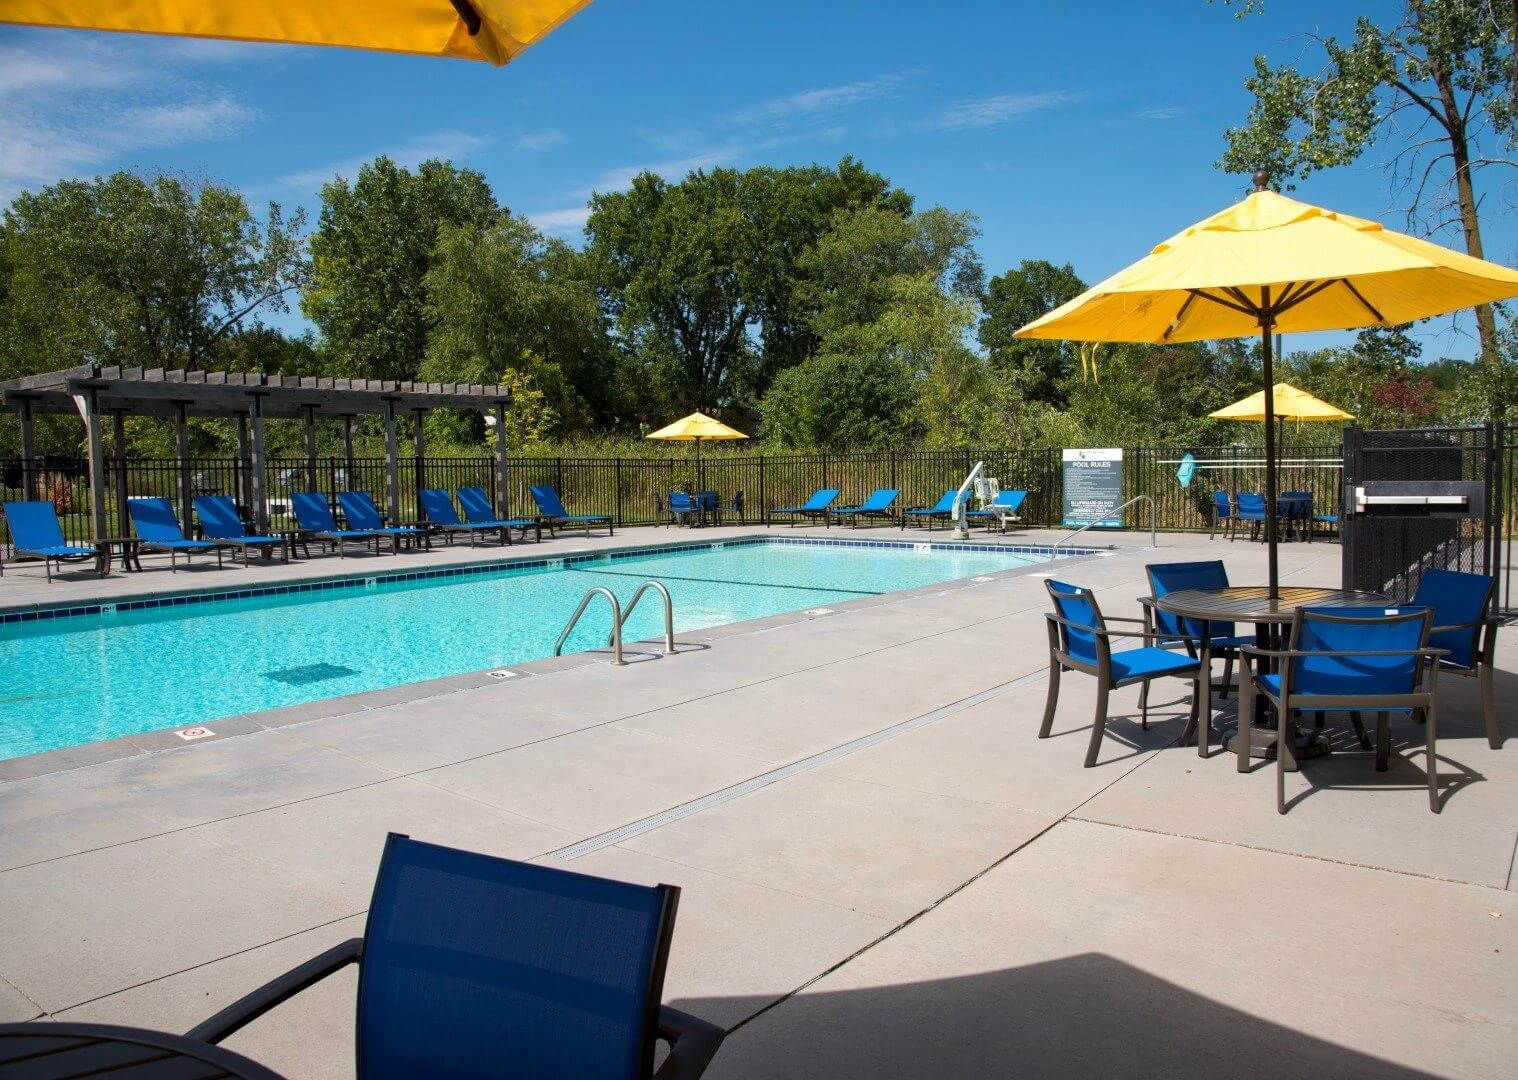 Pool at Shorview Grand cheap apartments in Shoreview MN